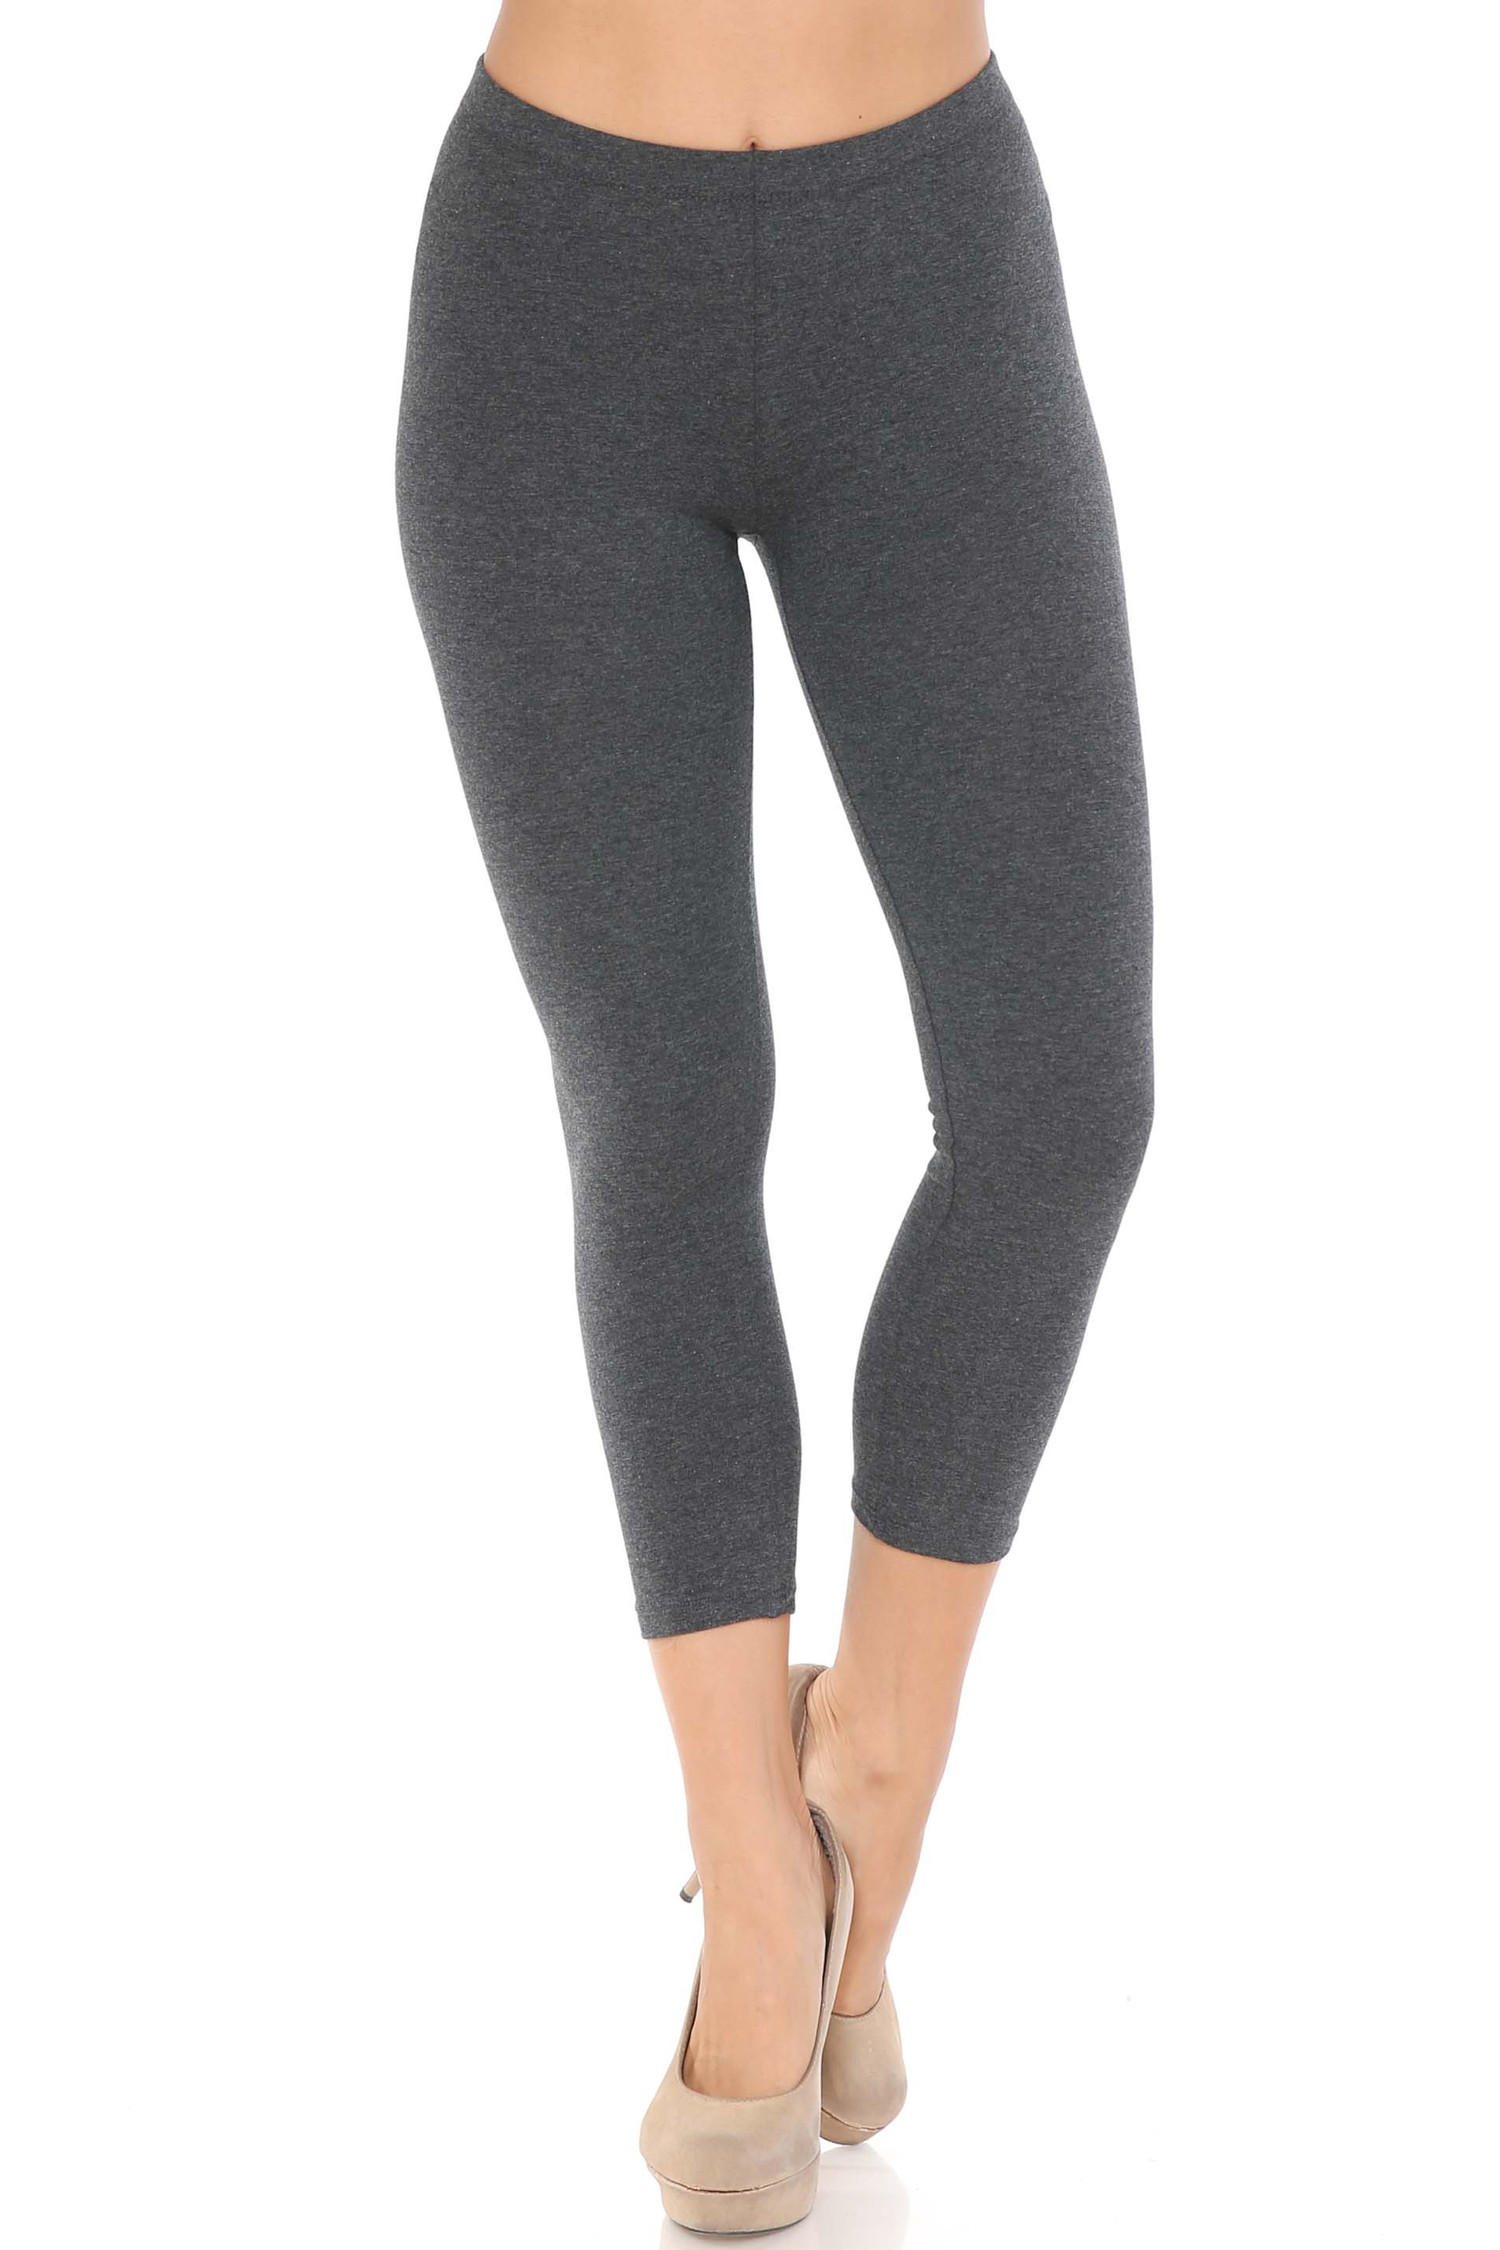 Front view of charcoal USA Cotton Capri Length Leggings